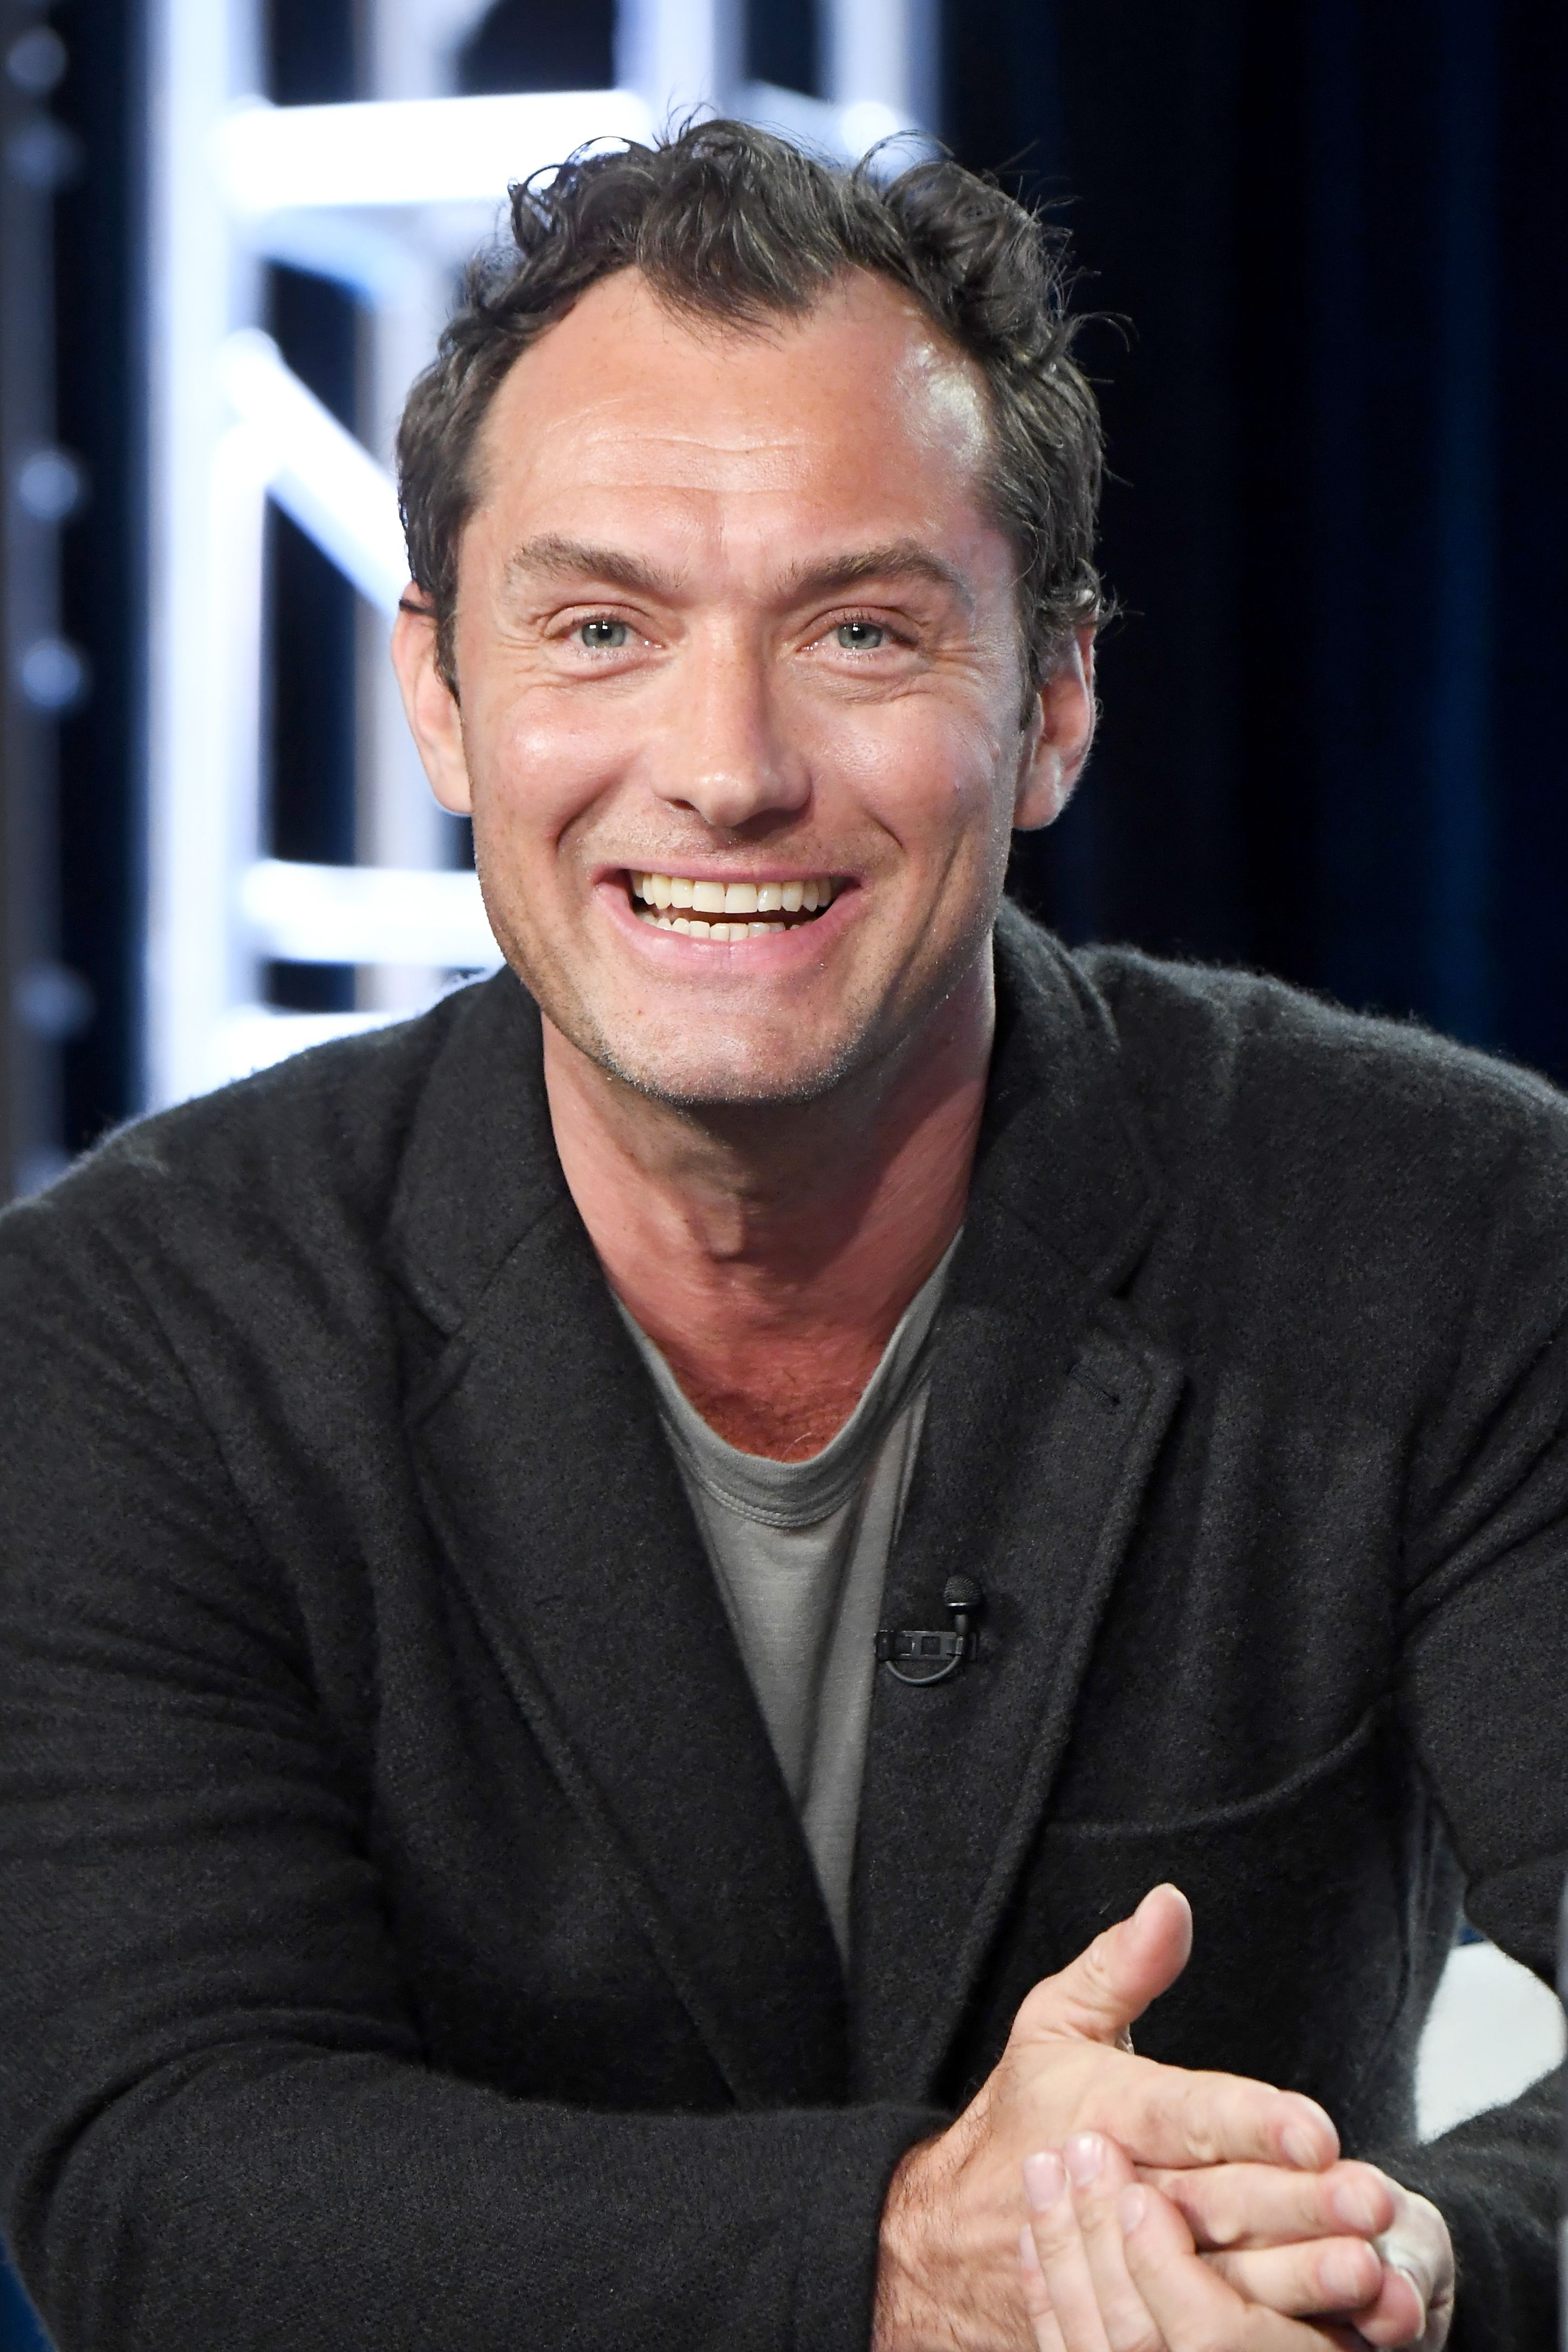 Jude Law during the HBO portion of the 2017 Winter Television Critics Association Press Tour at Langham Hotel on January 14, 2017 in Pasadena, California.   Source: Getty Images